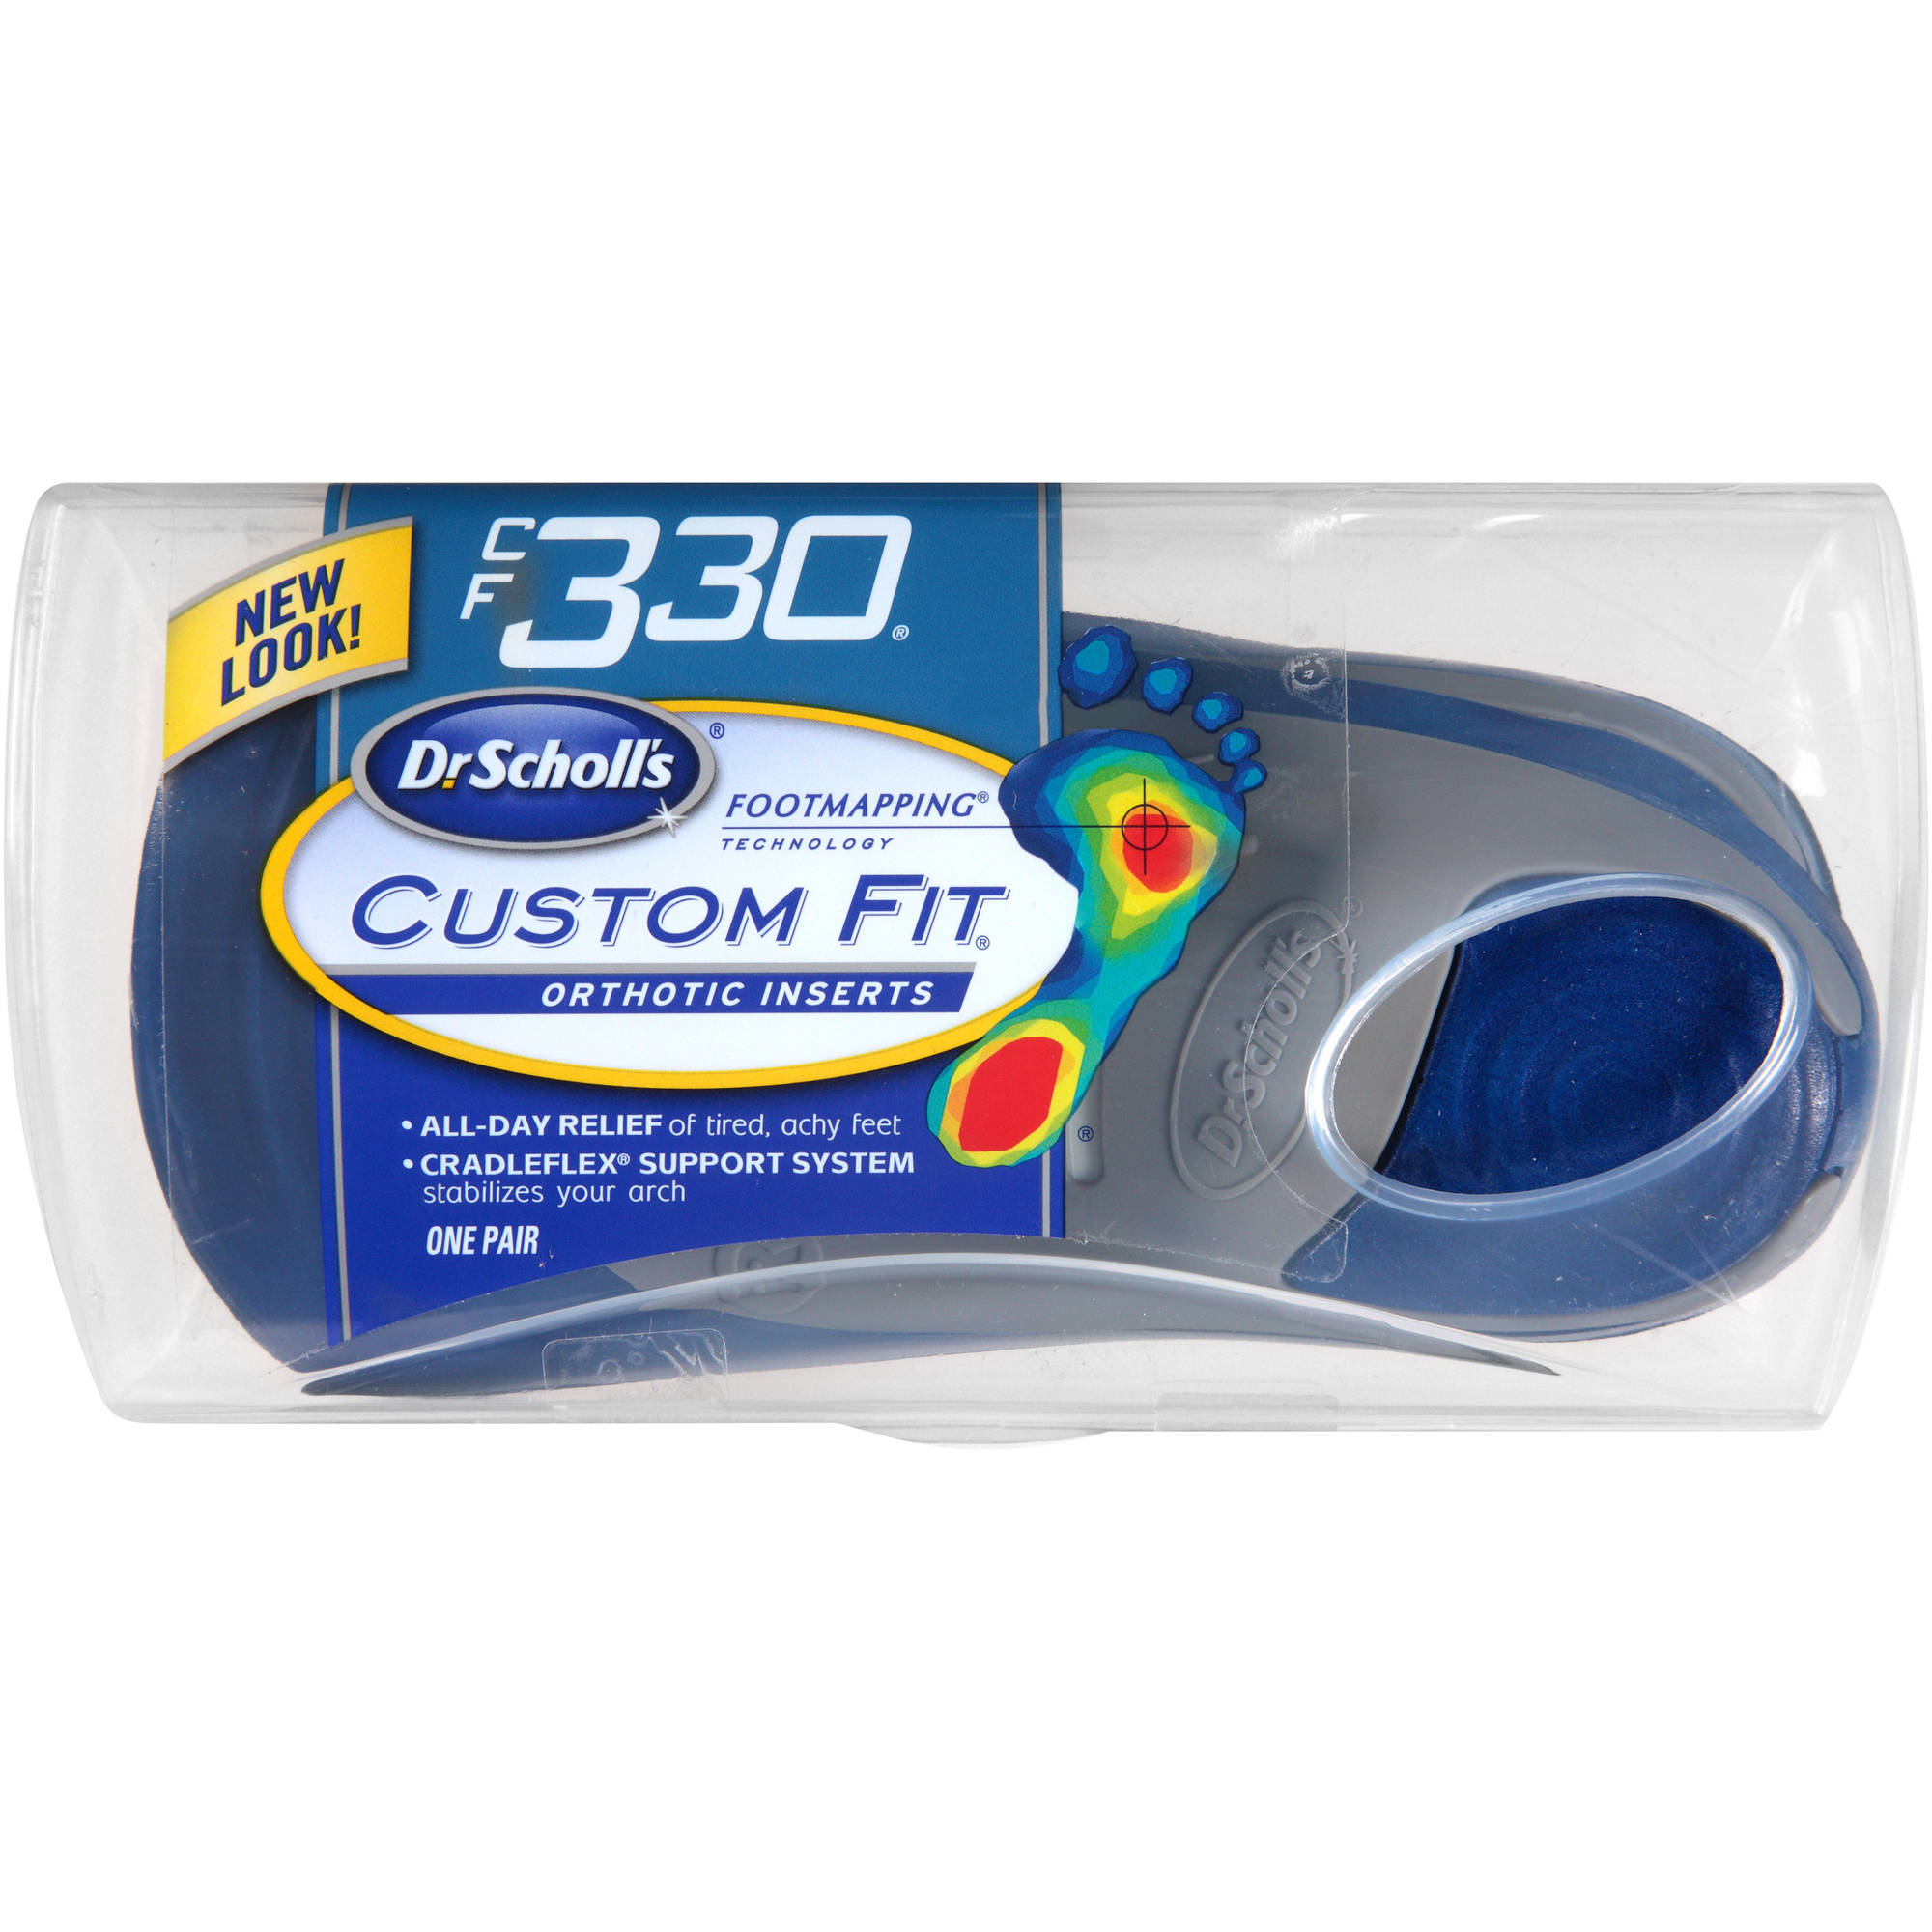 Dr. Scholl's Custom Fit CF330 Orthotic Inserts, 1 pr